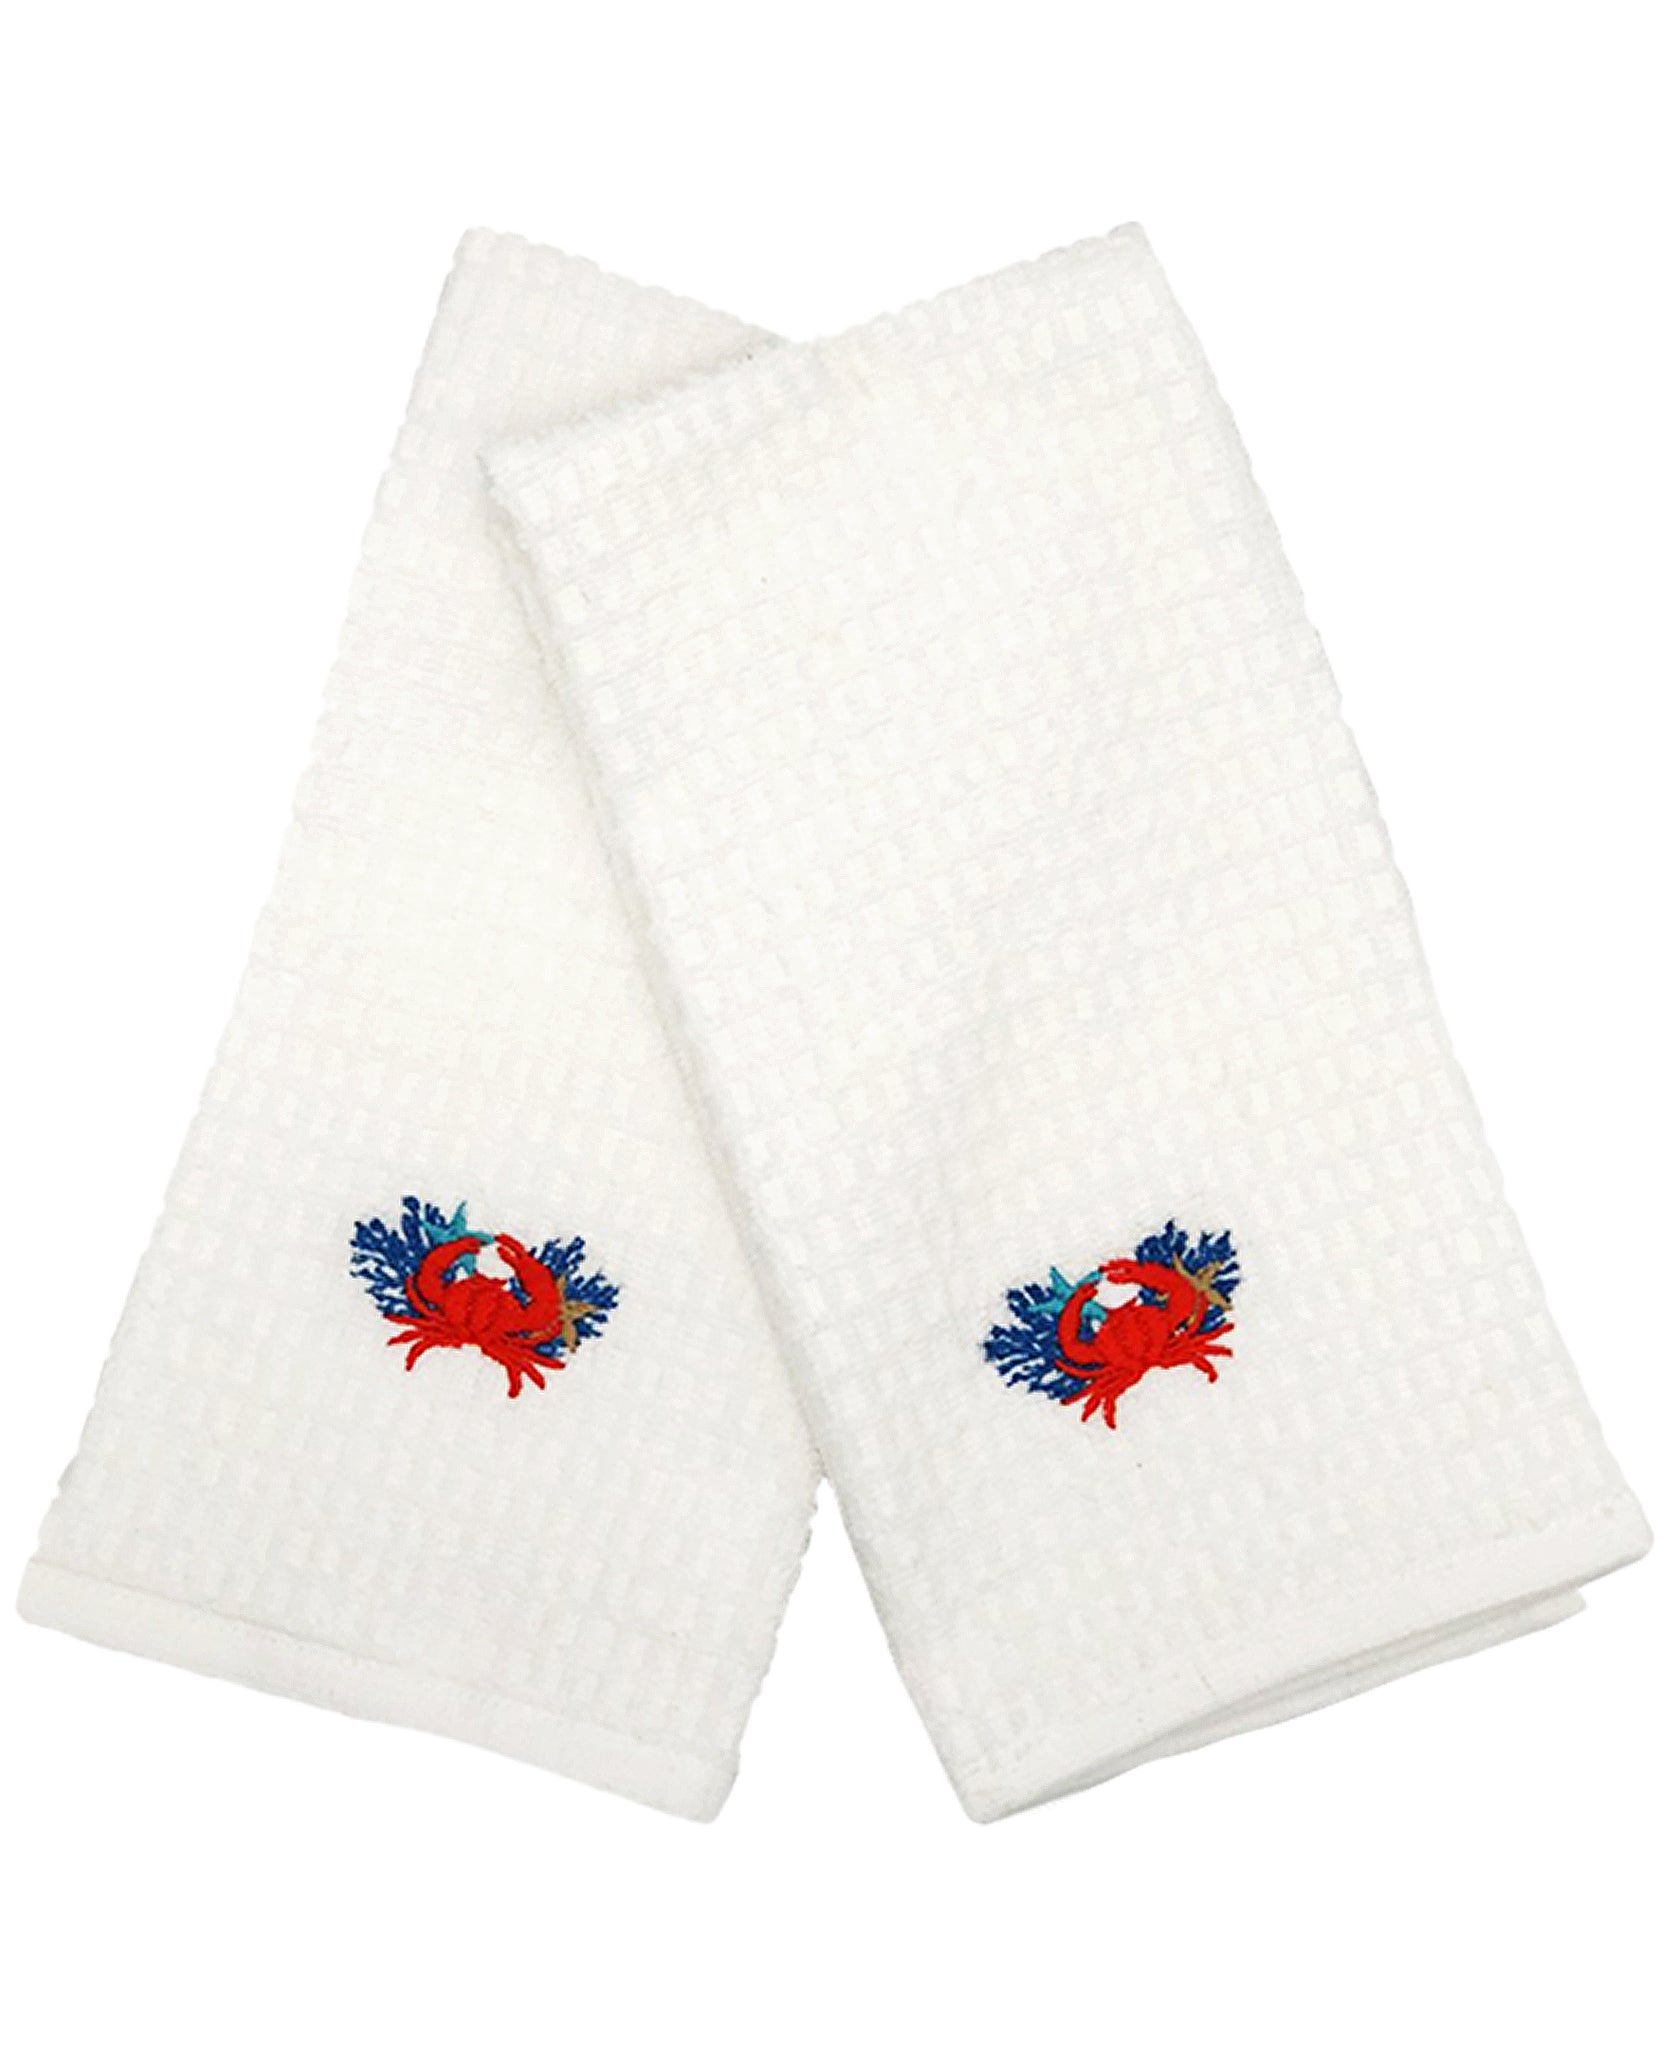 "2 Pack Coral Crab Embroidery Waffle Terry Towel, 16"" X 24"" Mod Lifestyles"